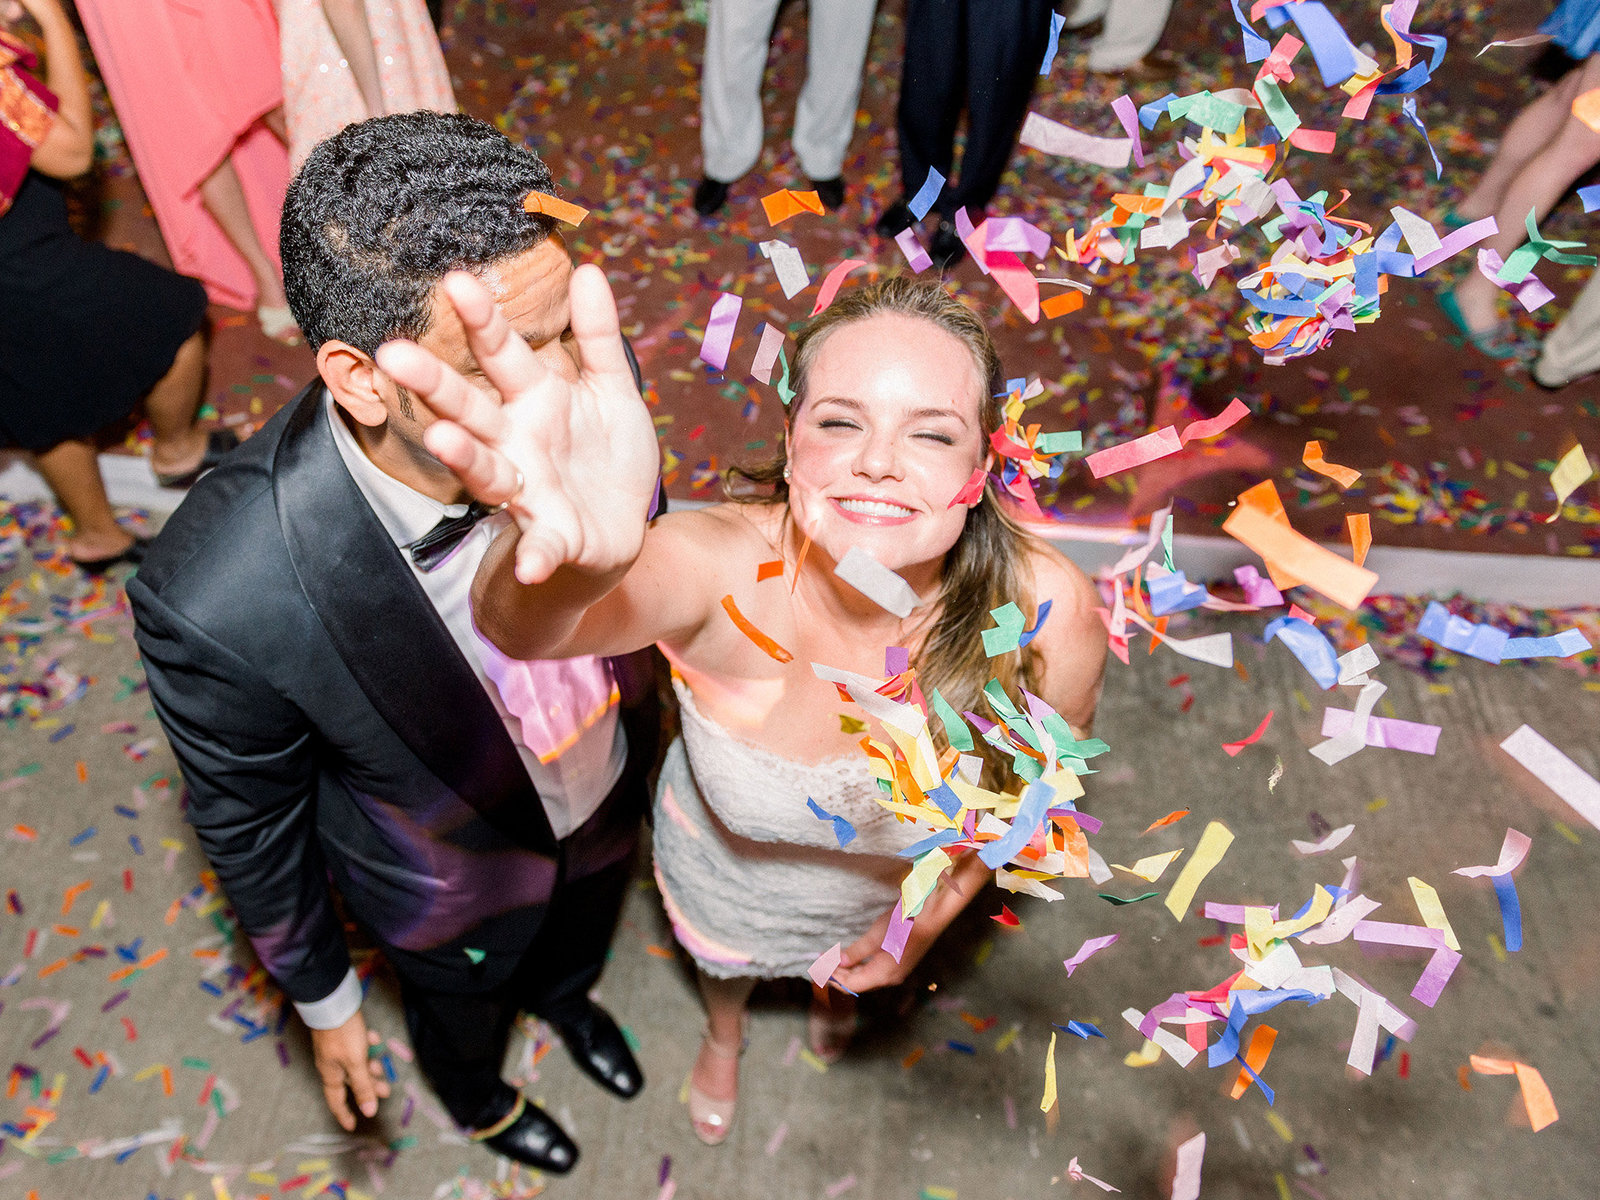 20150328-Pura-Soul-Photo-Cuba-Wedding-108